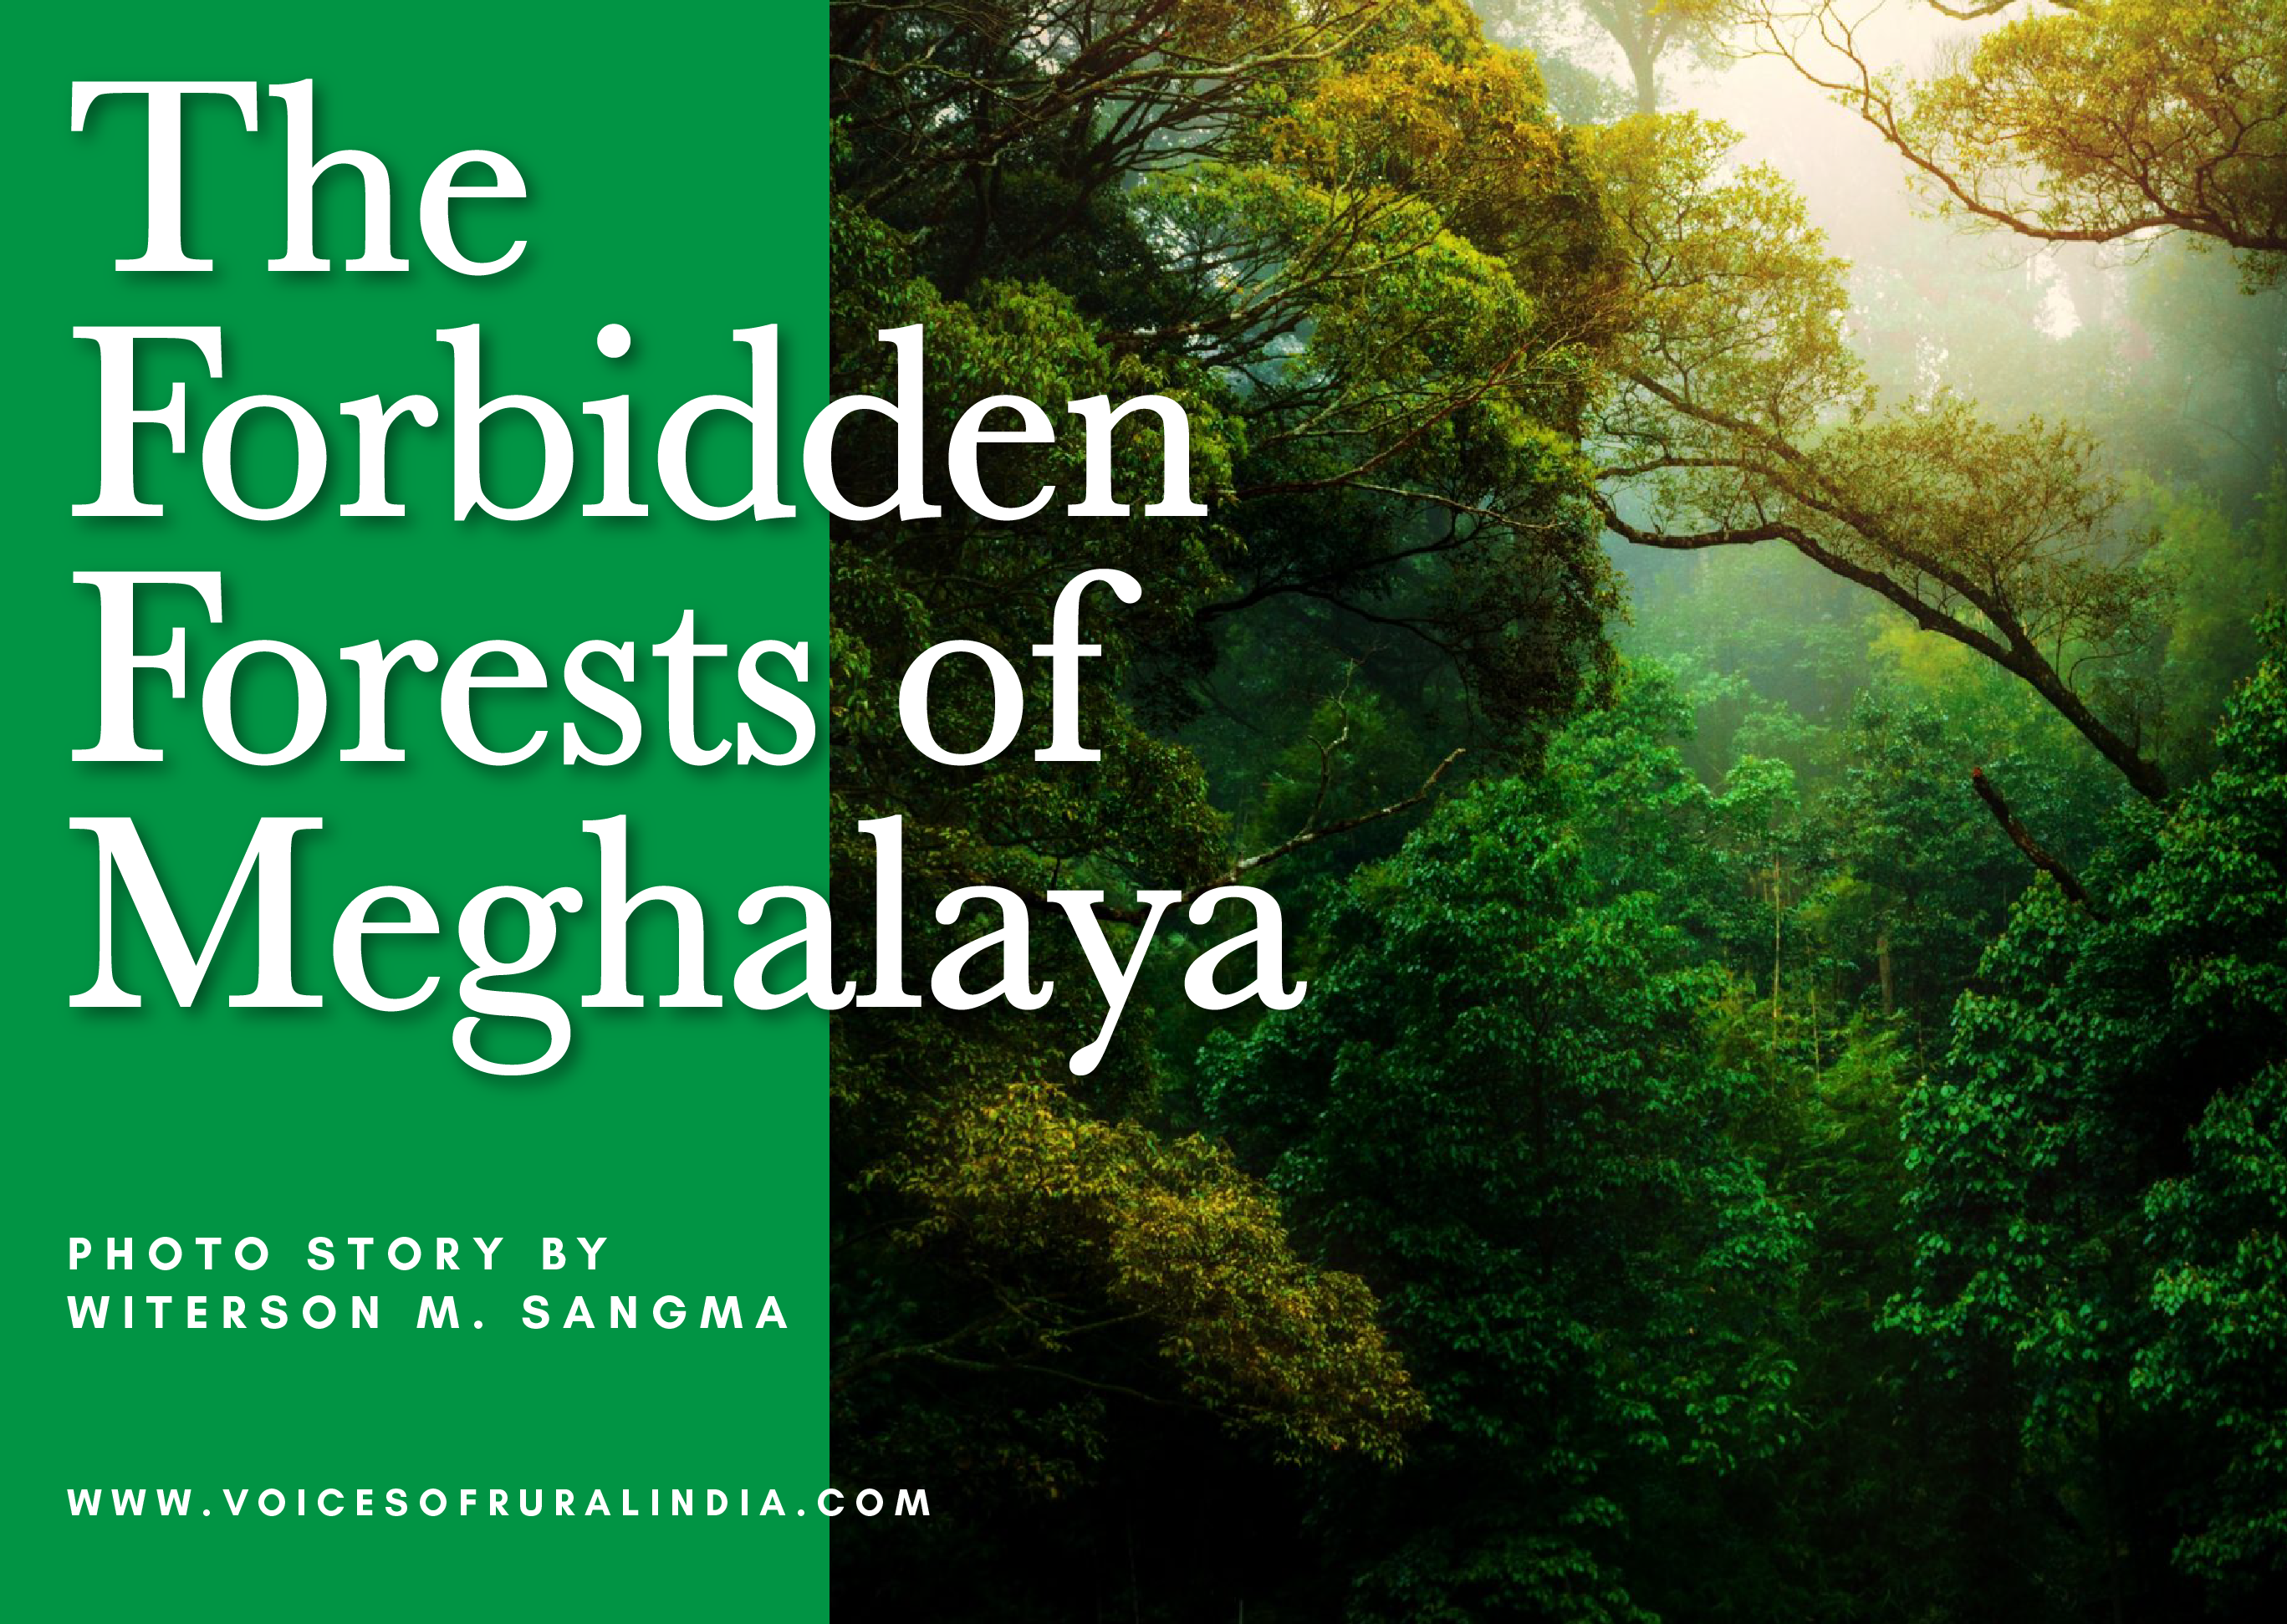 The Forbidden Forests of Meghalaya